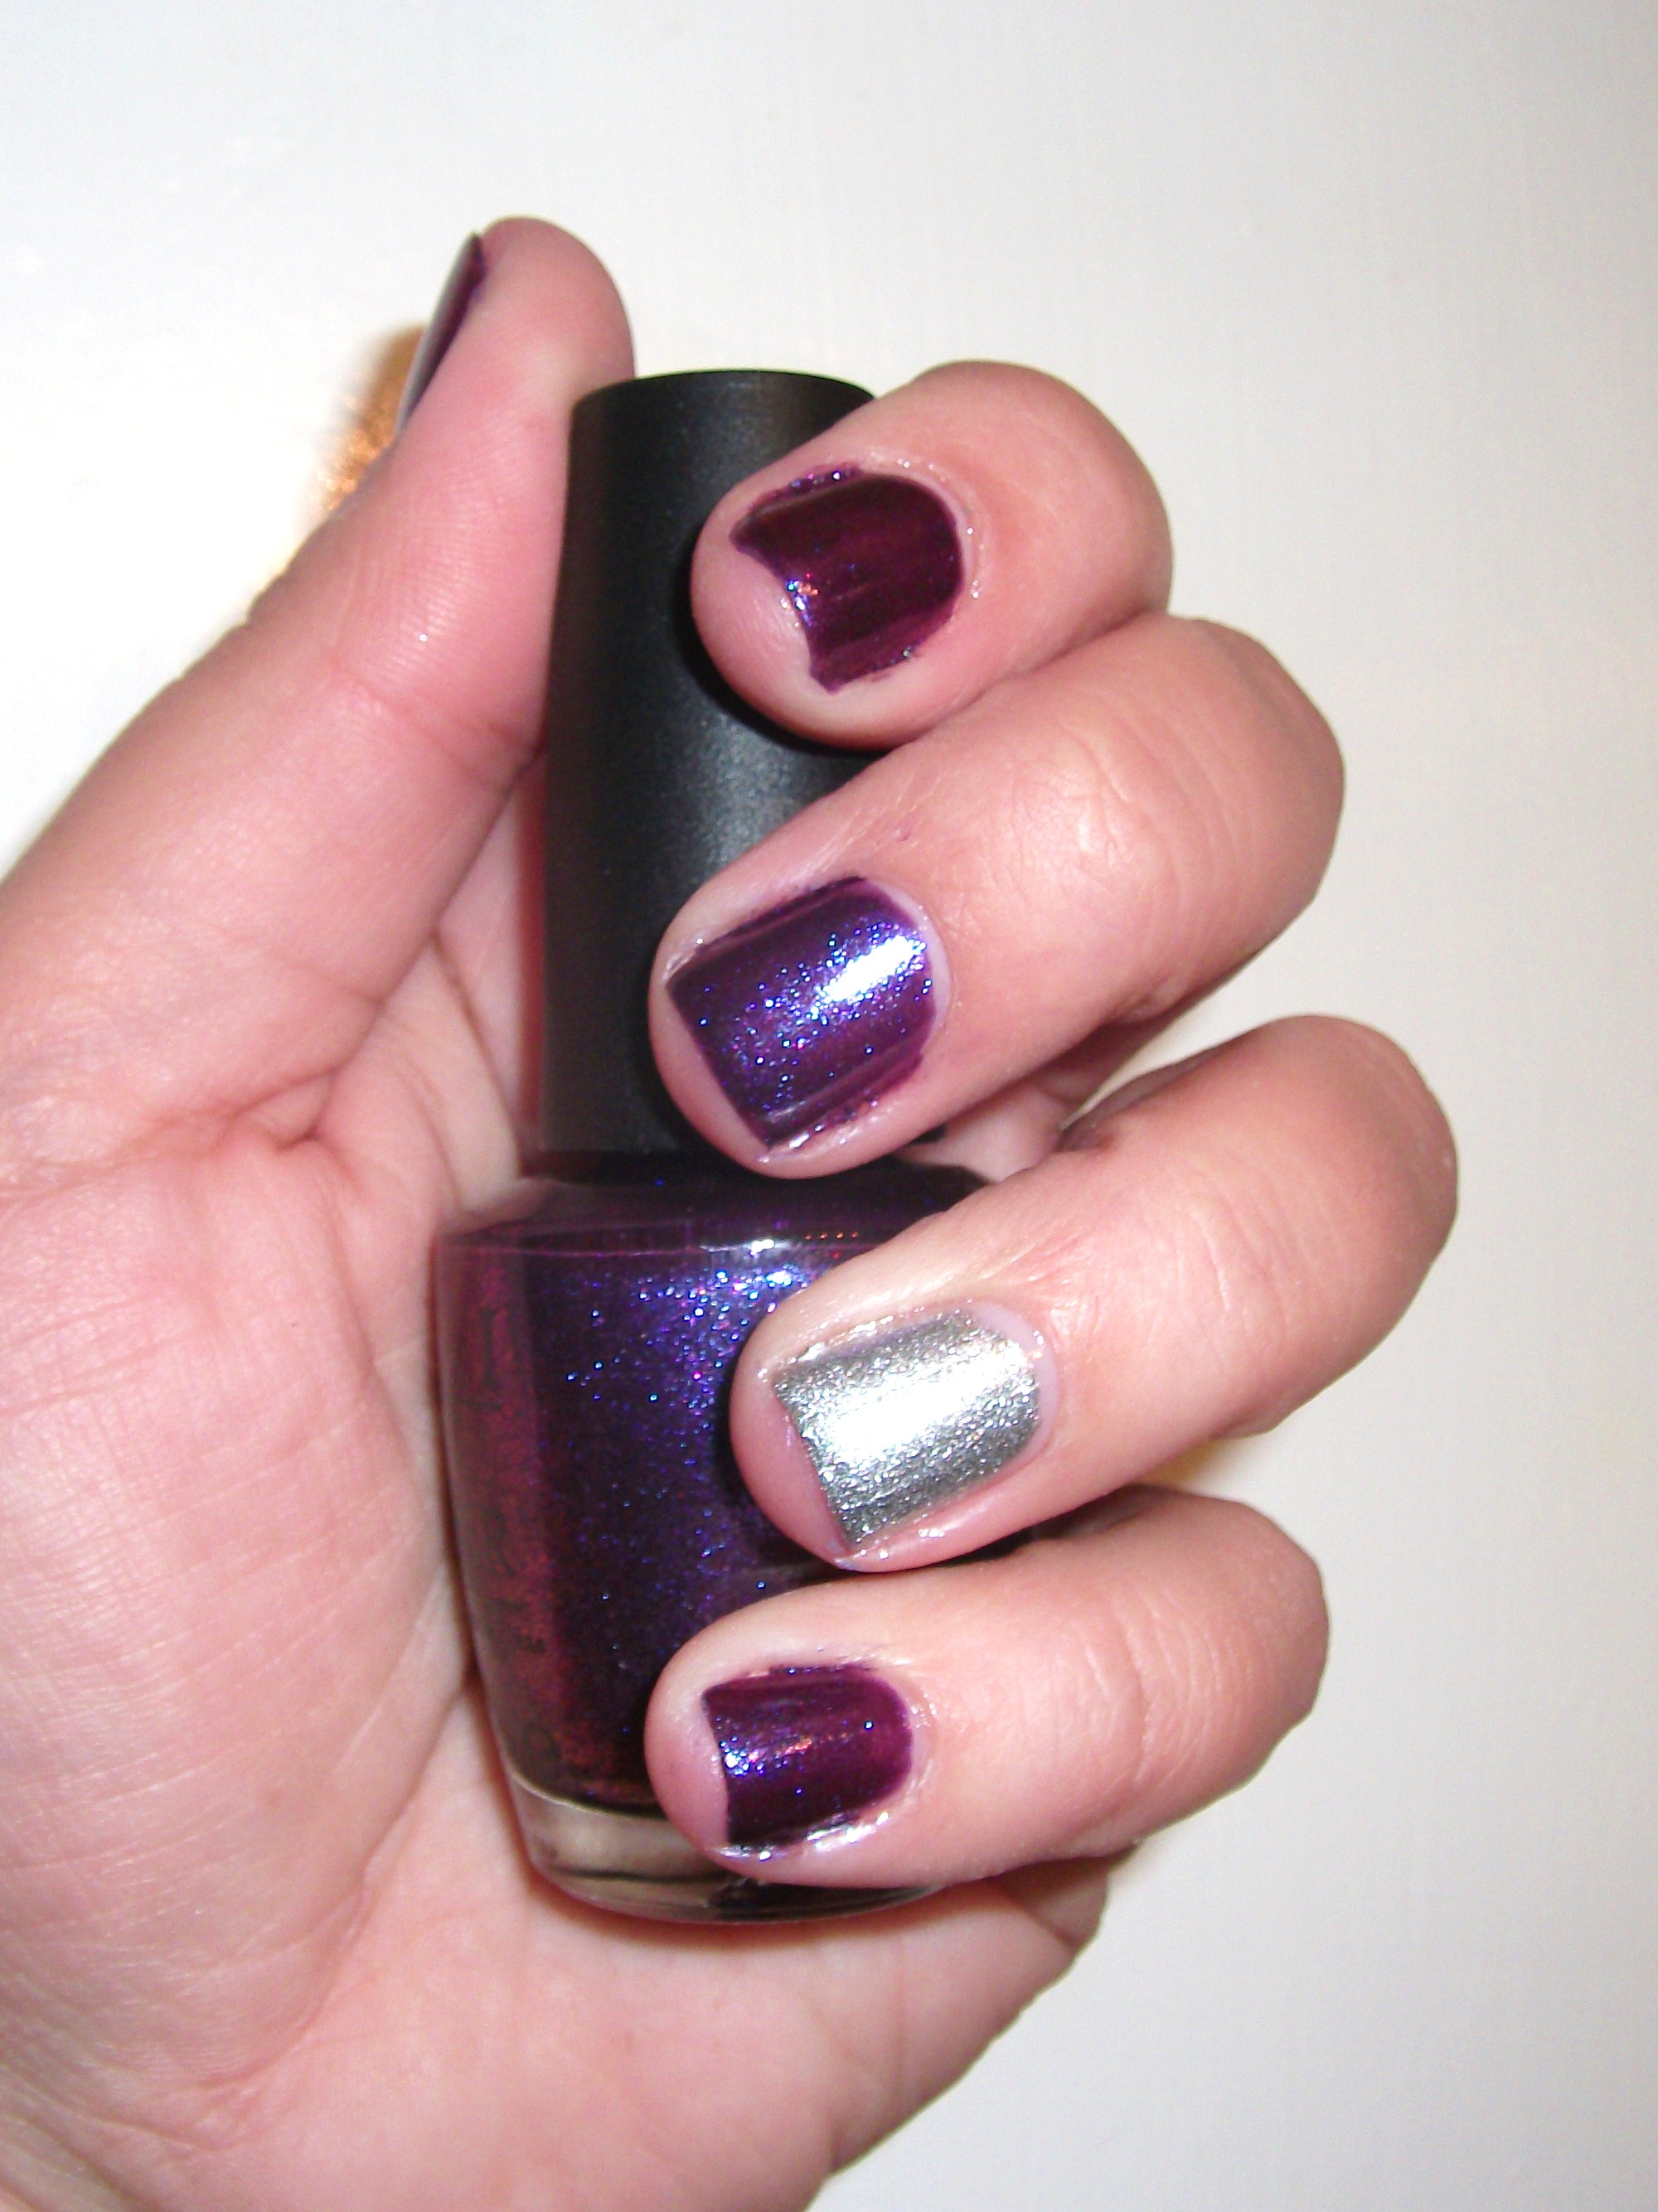 OPI Grape, Set, Match with a Servin\' Up Sparkle Accent Nail | Polish ...